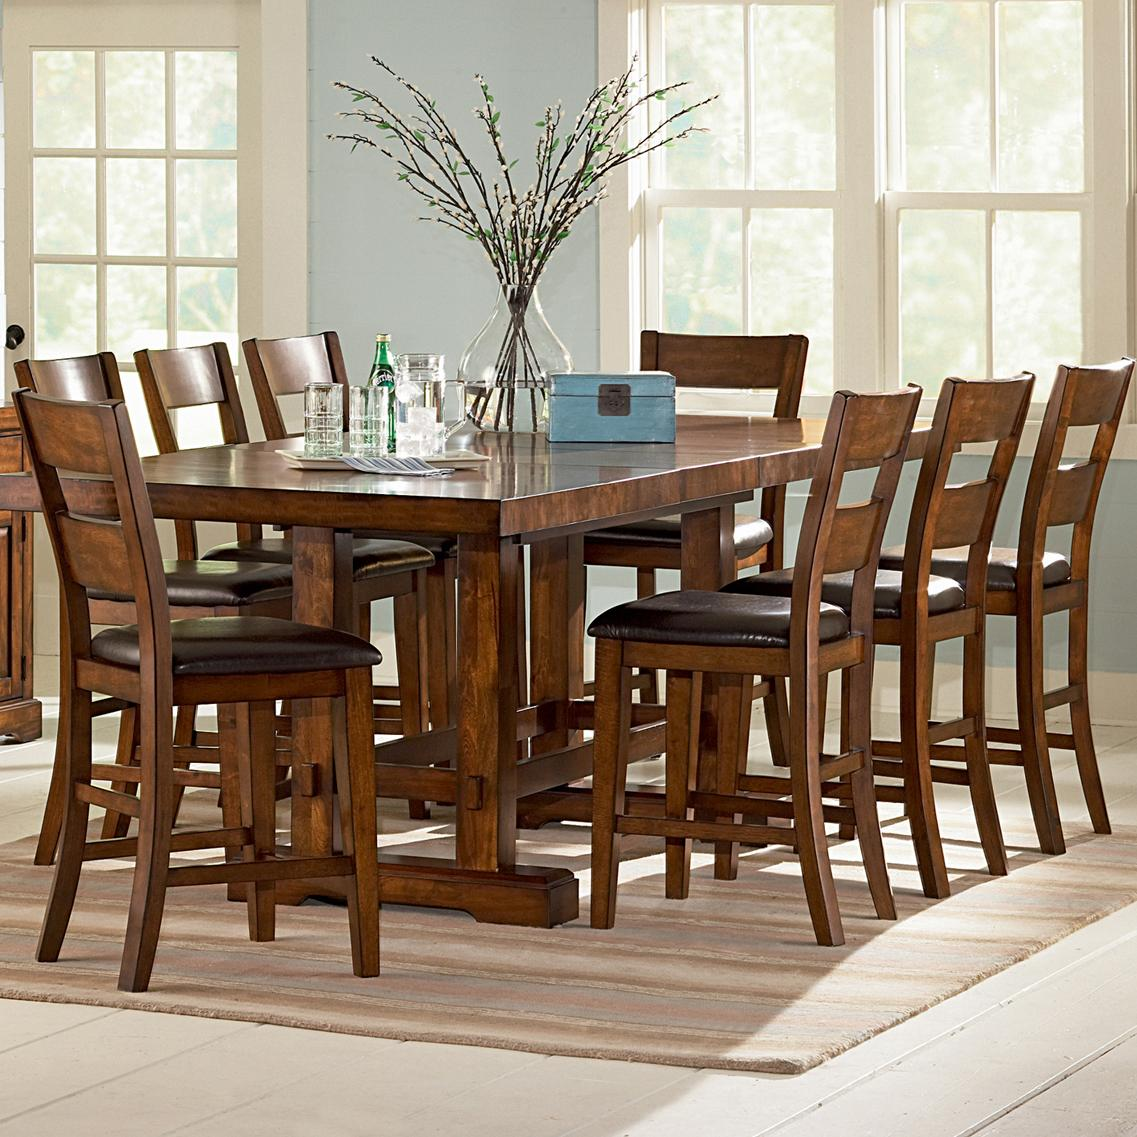 counter height kitchen chairs Vendor Zappa Counter Height Table Chair Set